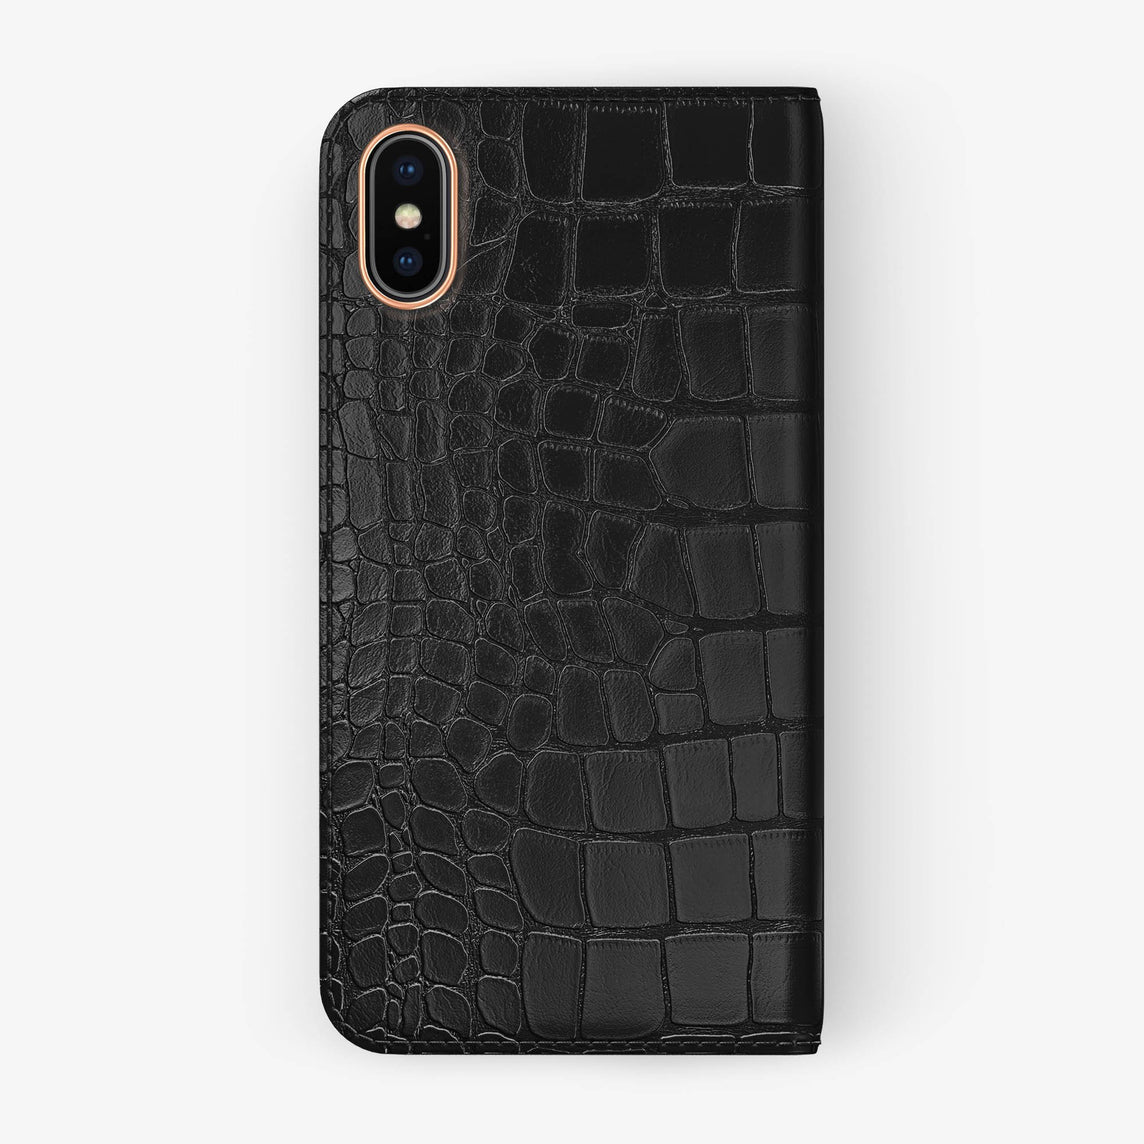 Black Alligator iPhone Folio Case for iPhone X finishing rose gold - Hadoro Luxury Cases